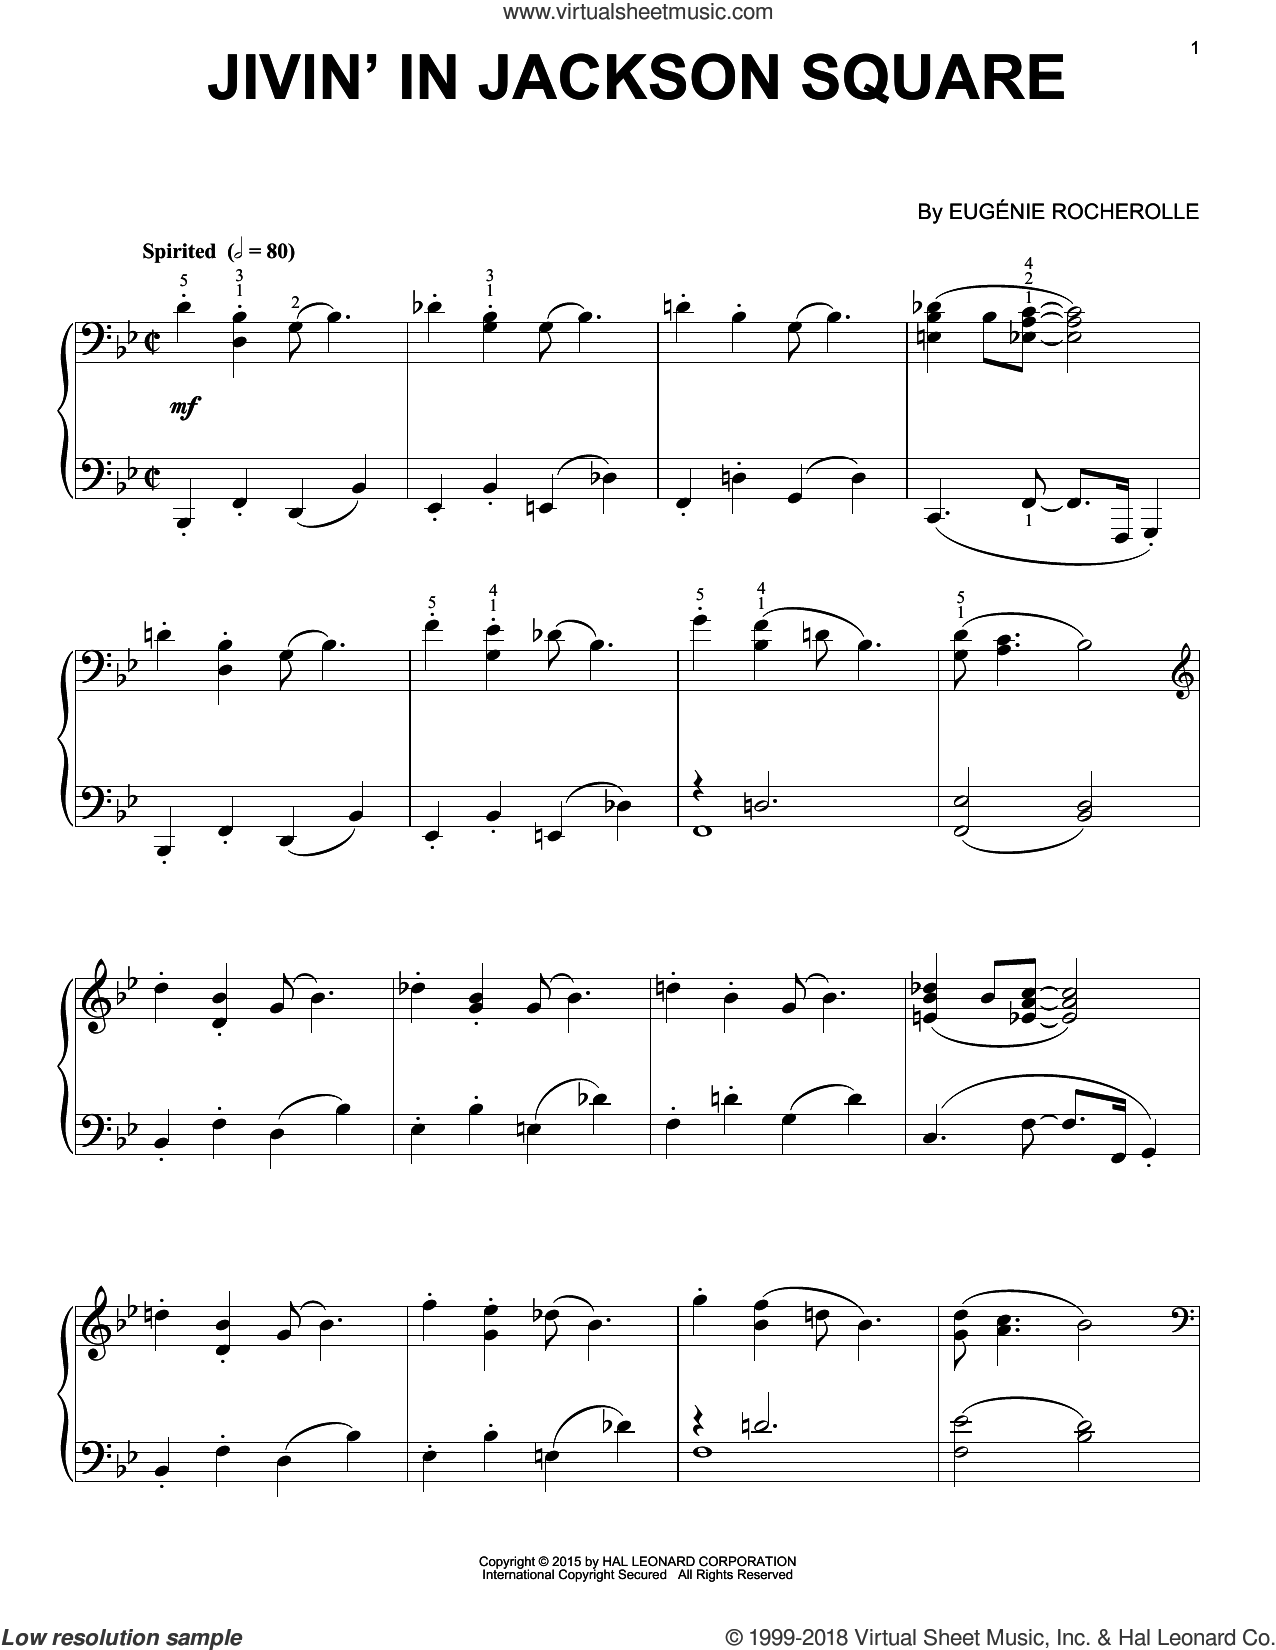 Jivin' In Jackson Square sheet music for piano solo by Eugénie Rocherolle and Eugenie Rocherolle. Score Image Preview.